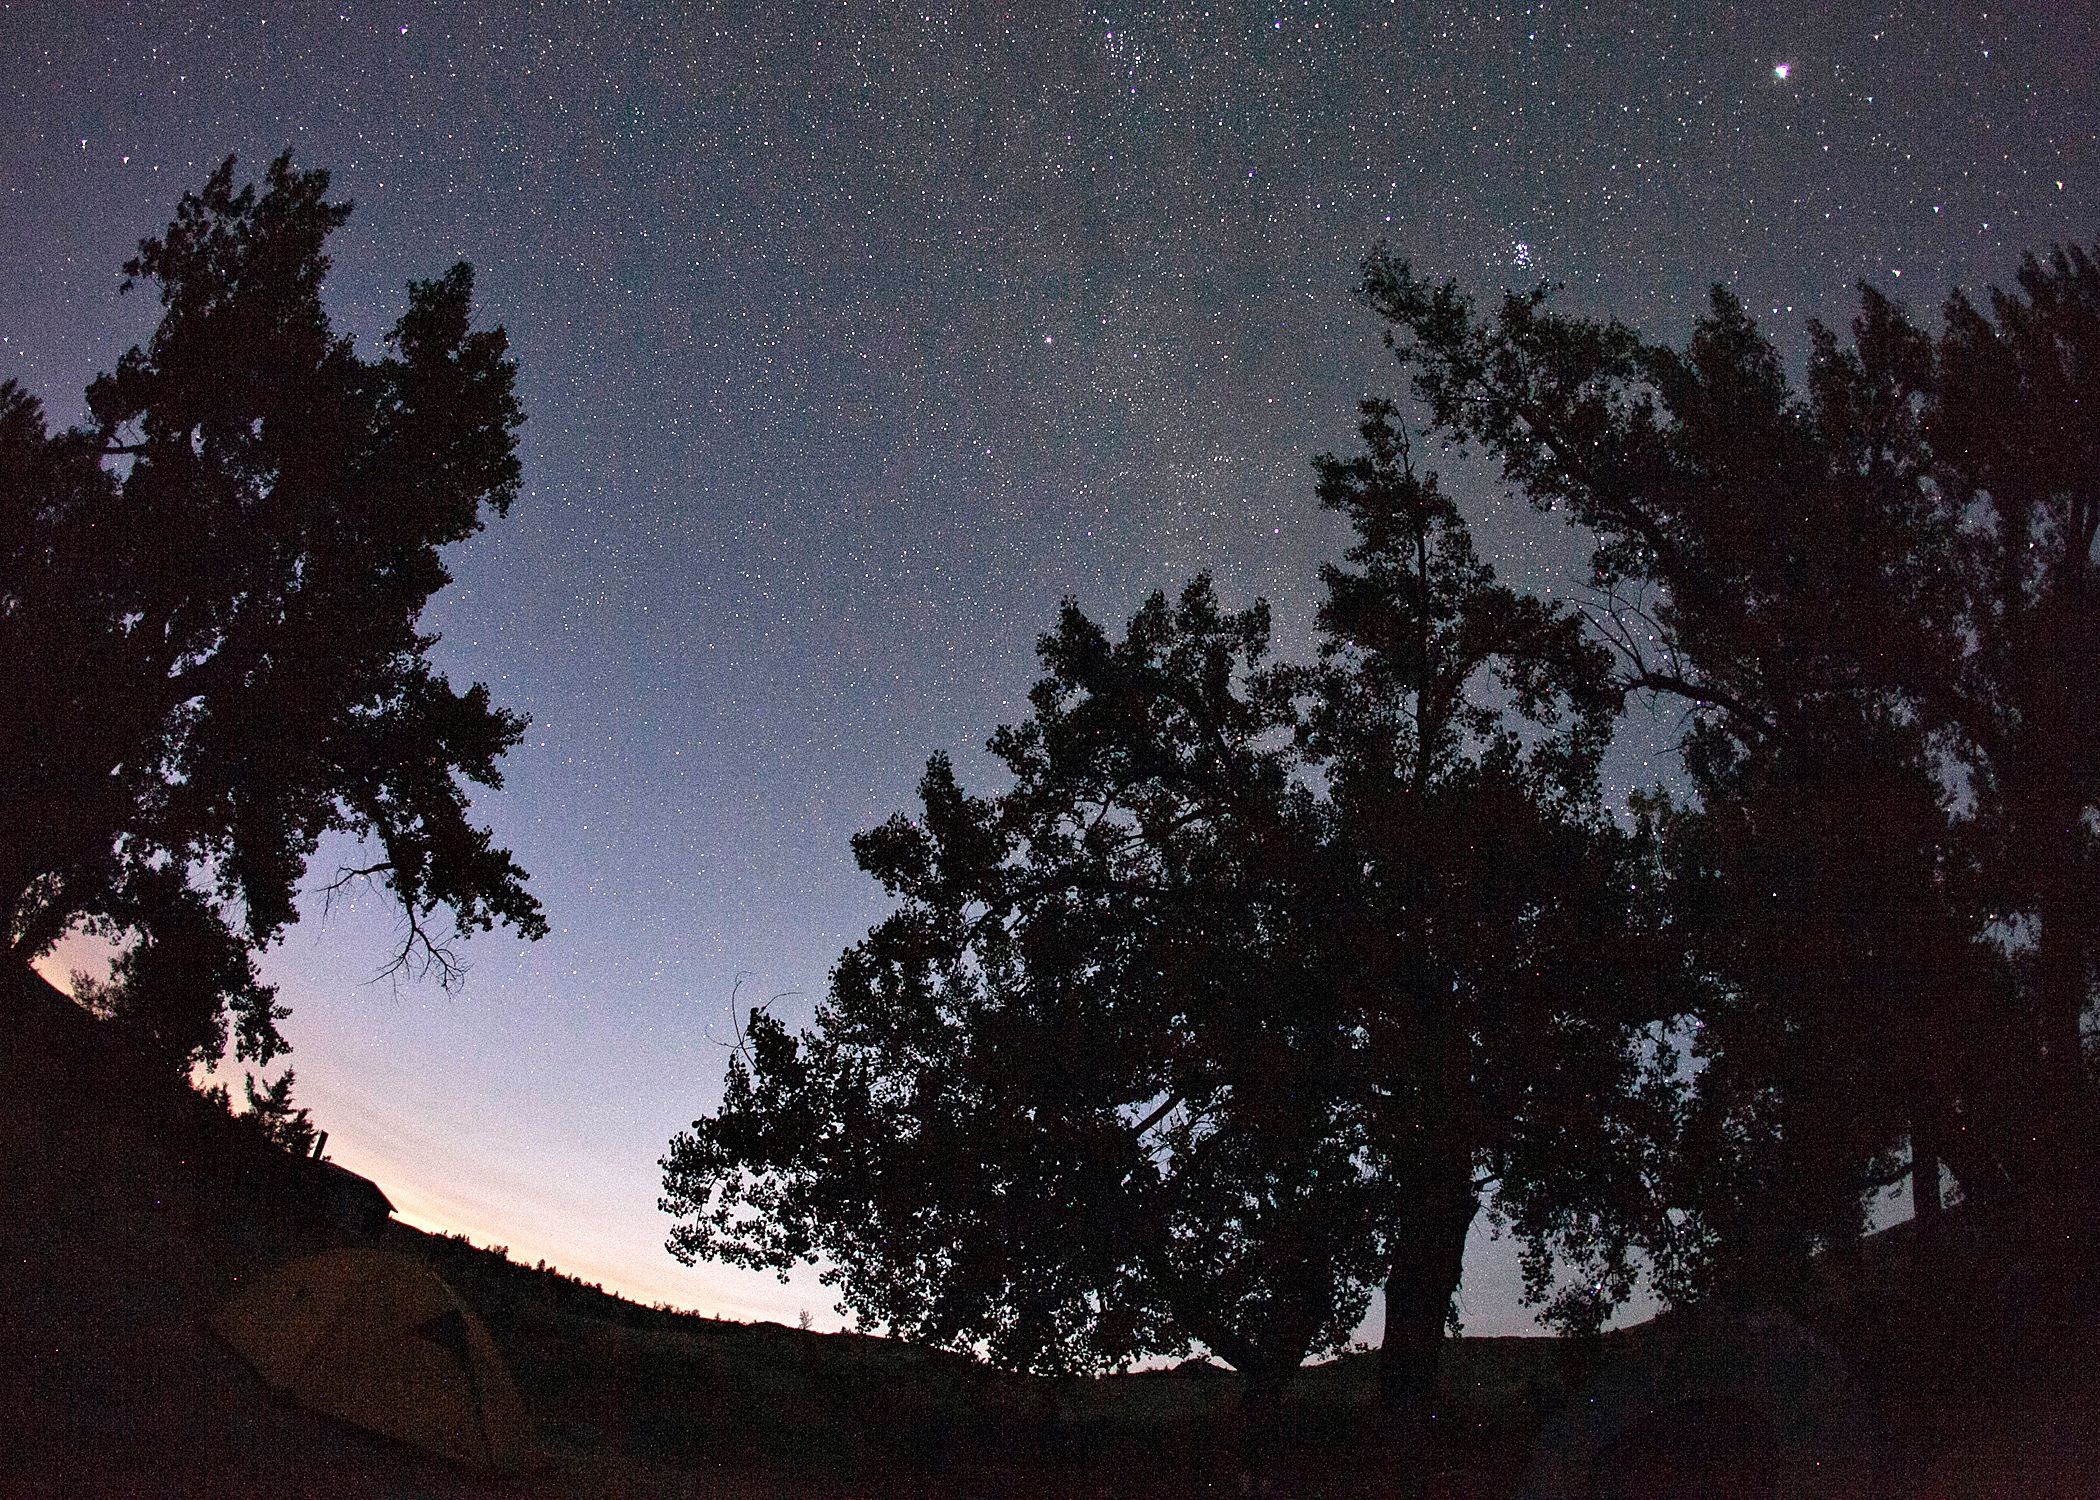 Large trees silhouetted against a sky of millions of stars above a campsite along the Missouri River in Montana.